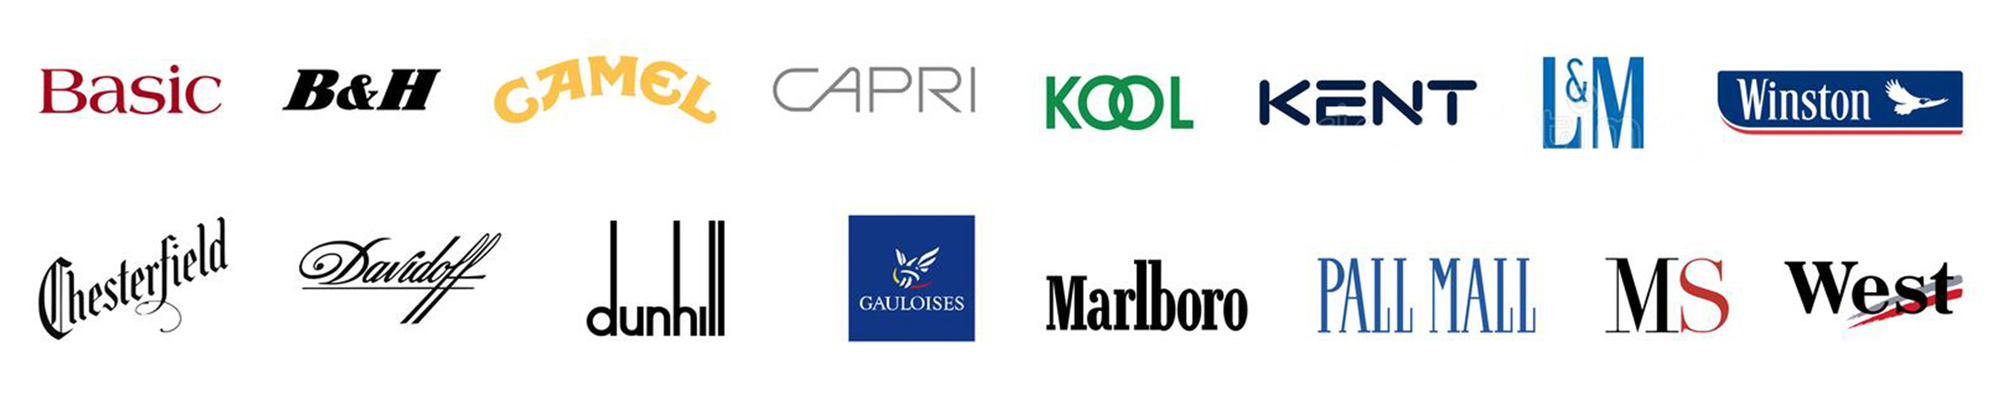 buy cheap cigarettes online on www.smokersunit.com